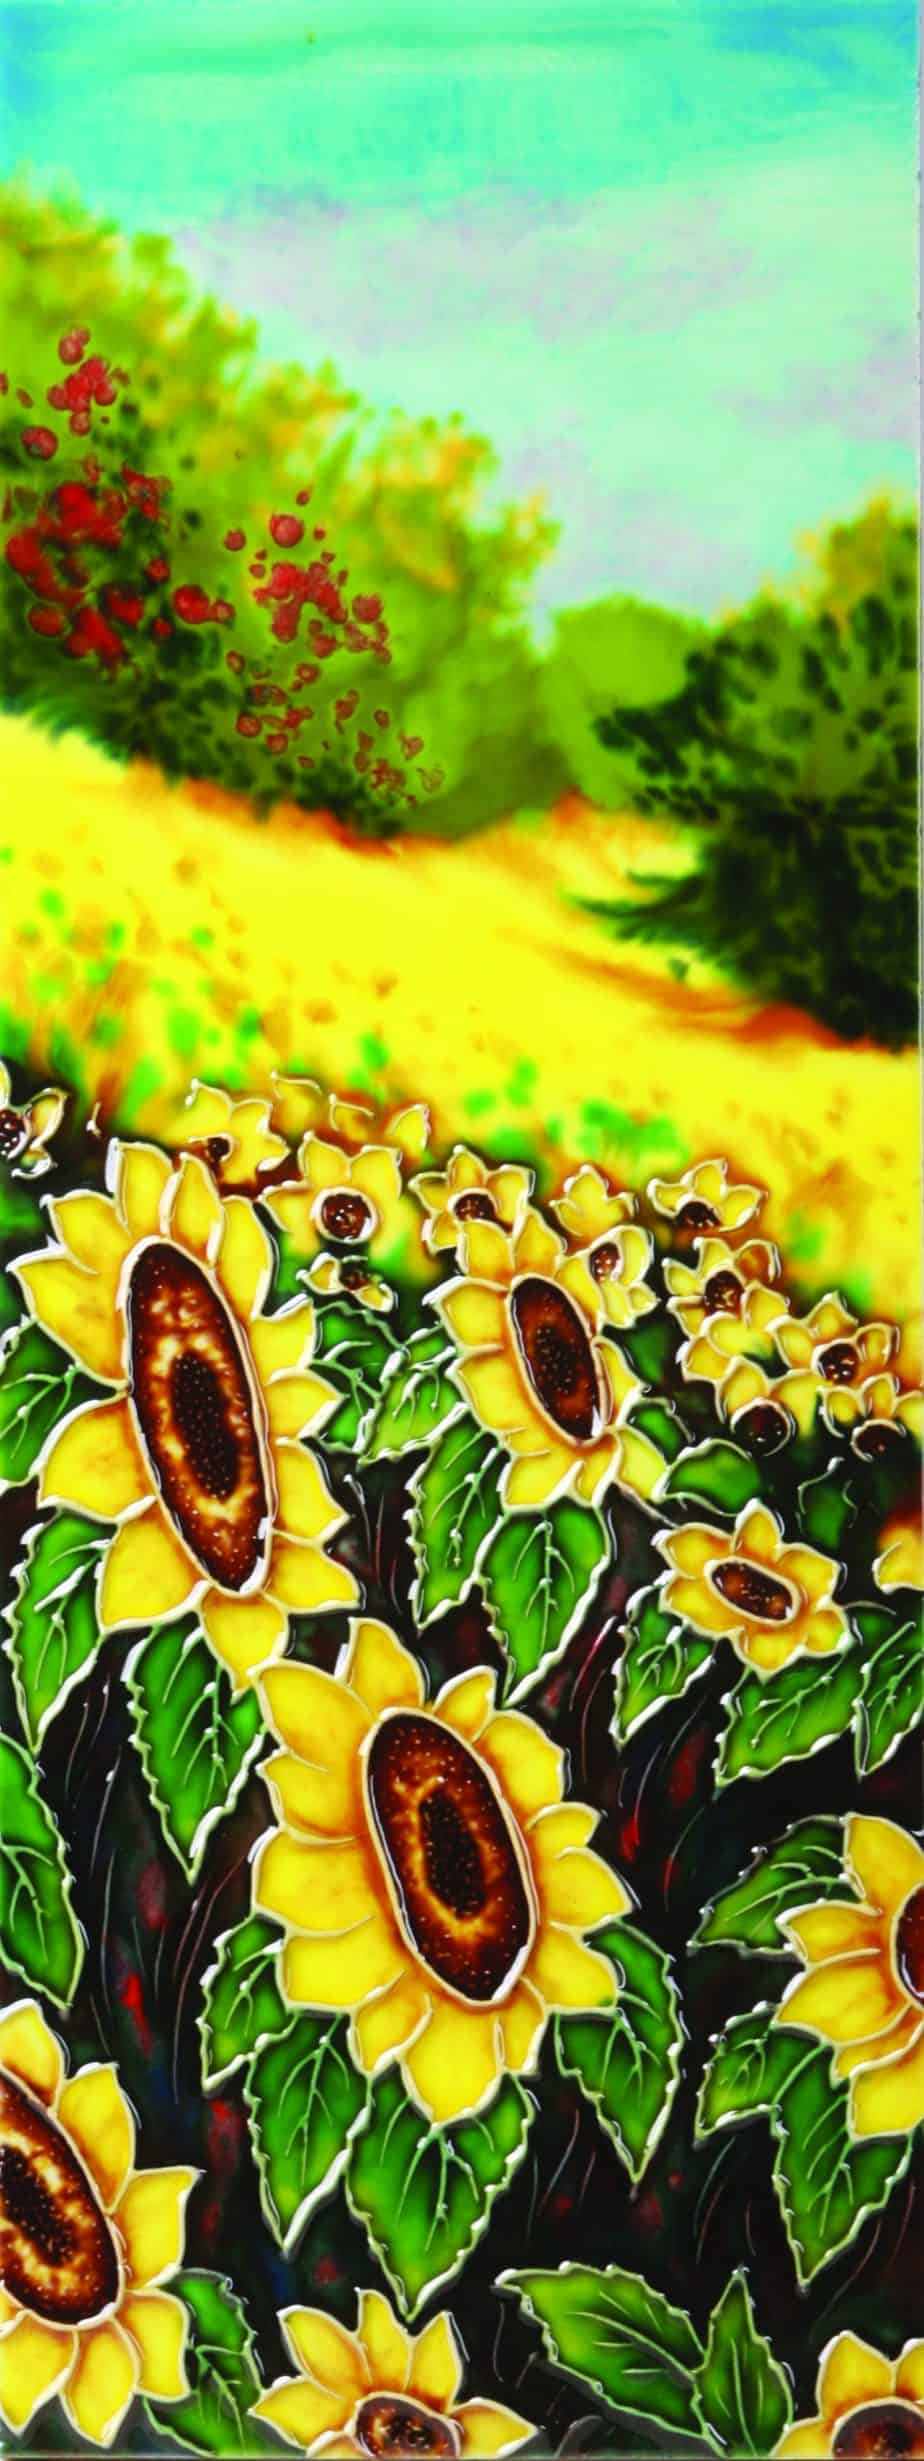 Hill Side Sunflowers 6×16 (520681)